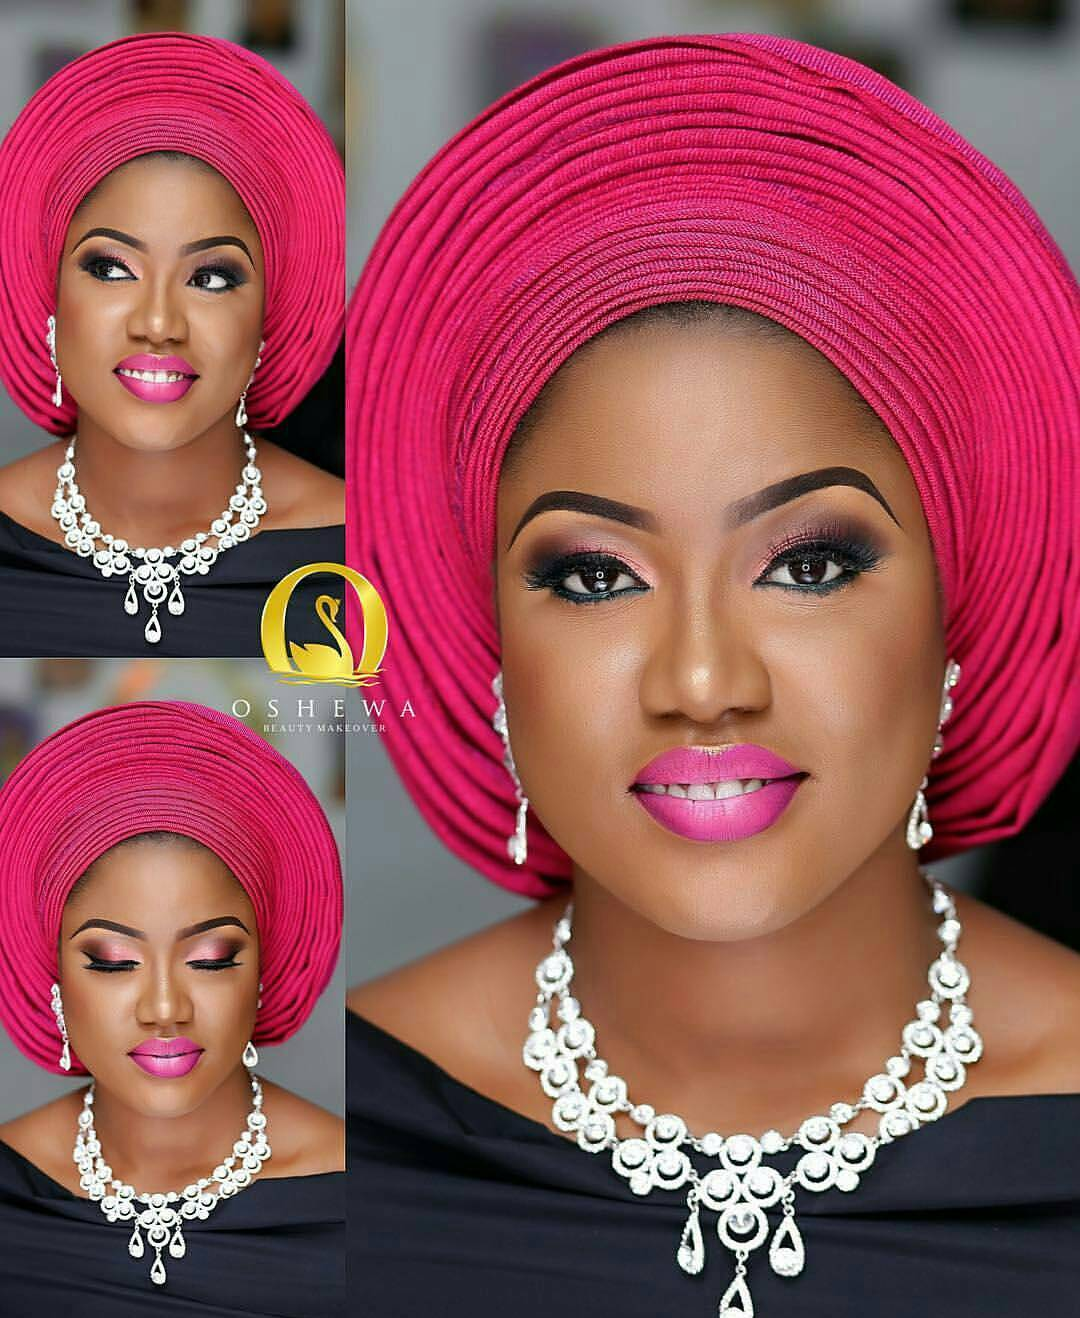 Make Up And Gele #30: Sallah Things!